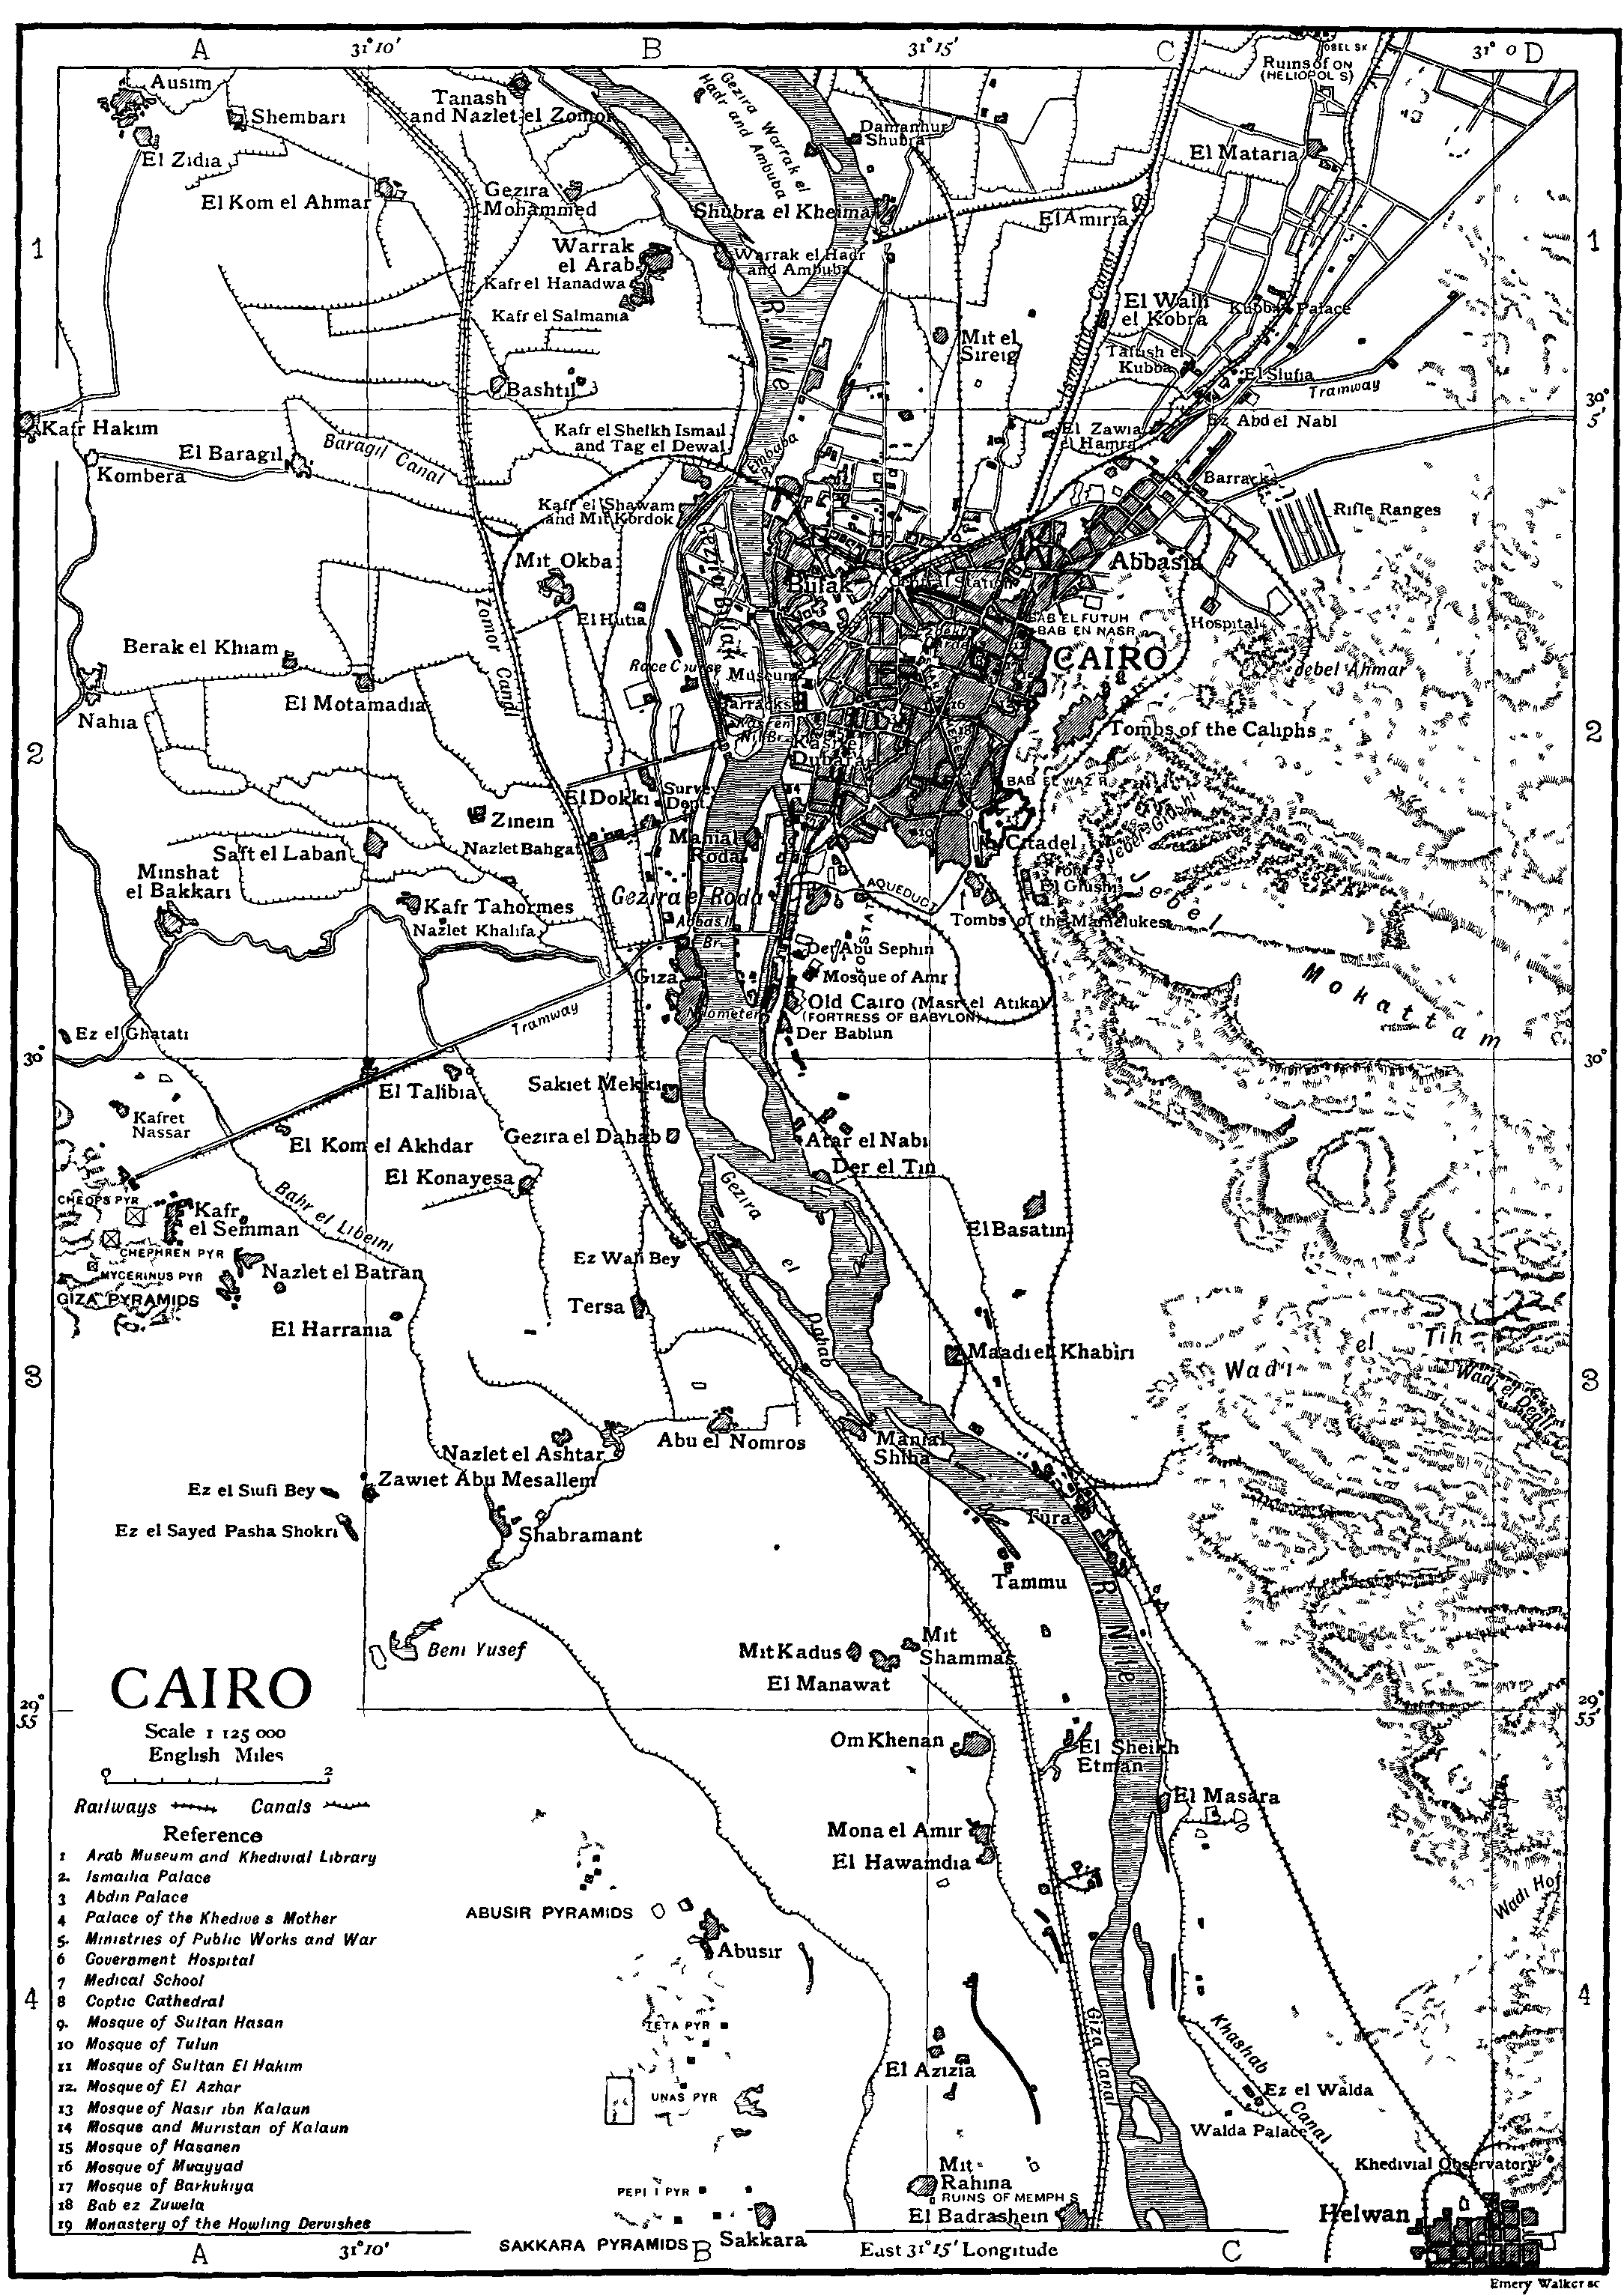 Cairo 1 large map